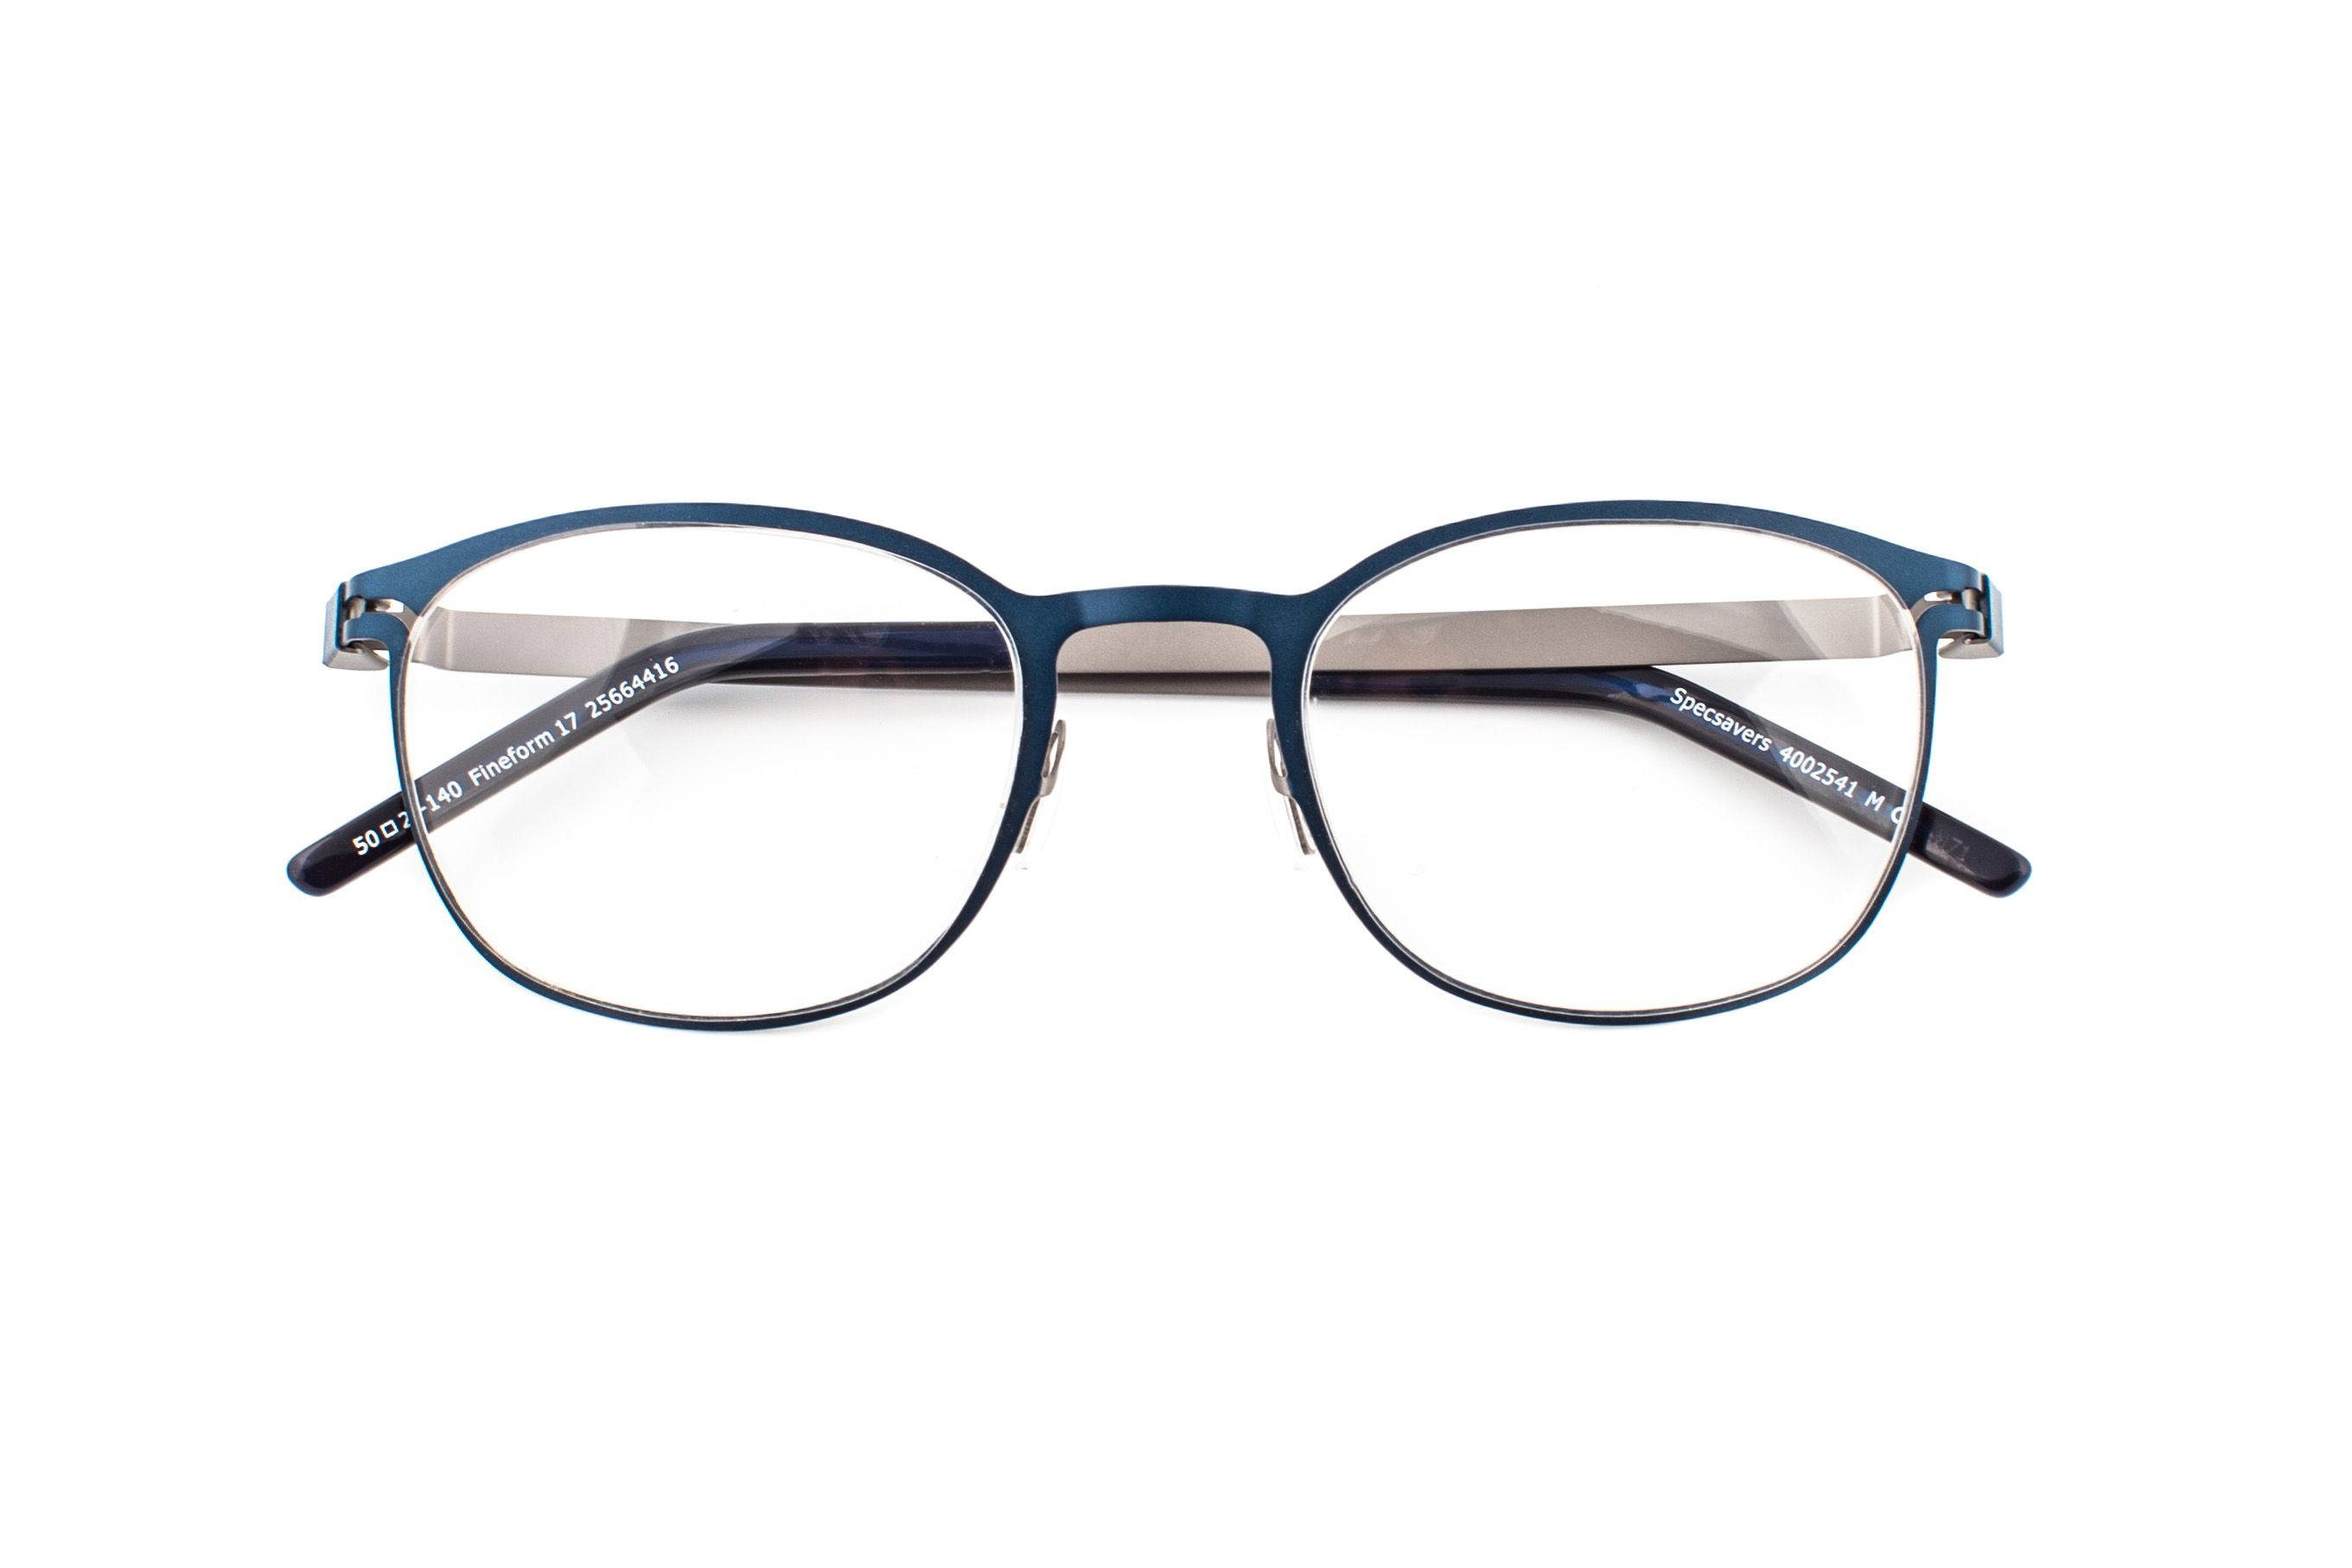 Specsavers Glasses Frames : Specsavers new Fineform eyewear collection features both ...